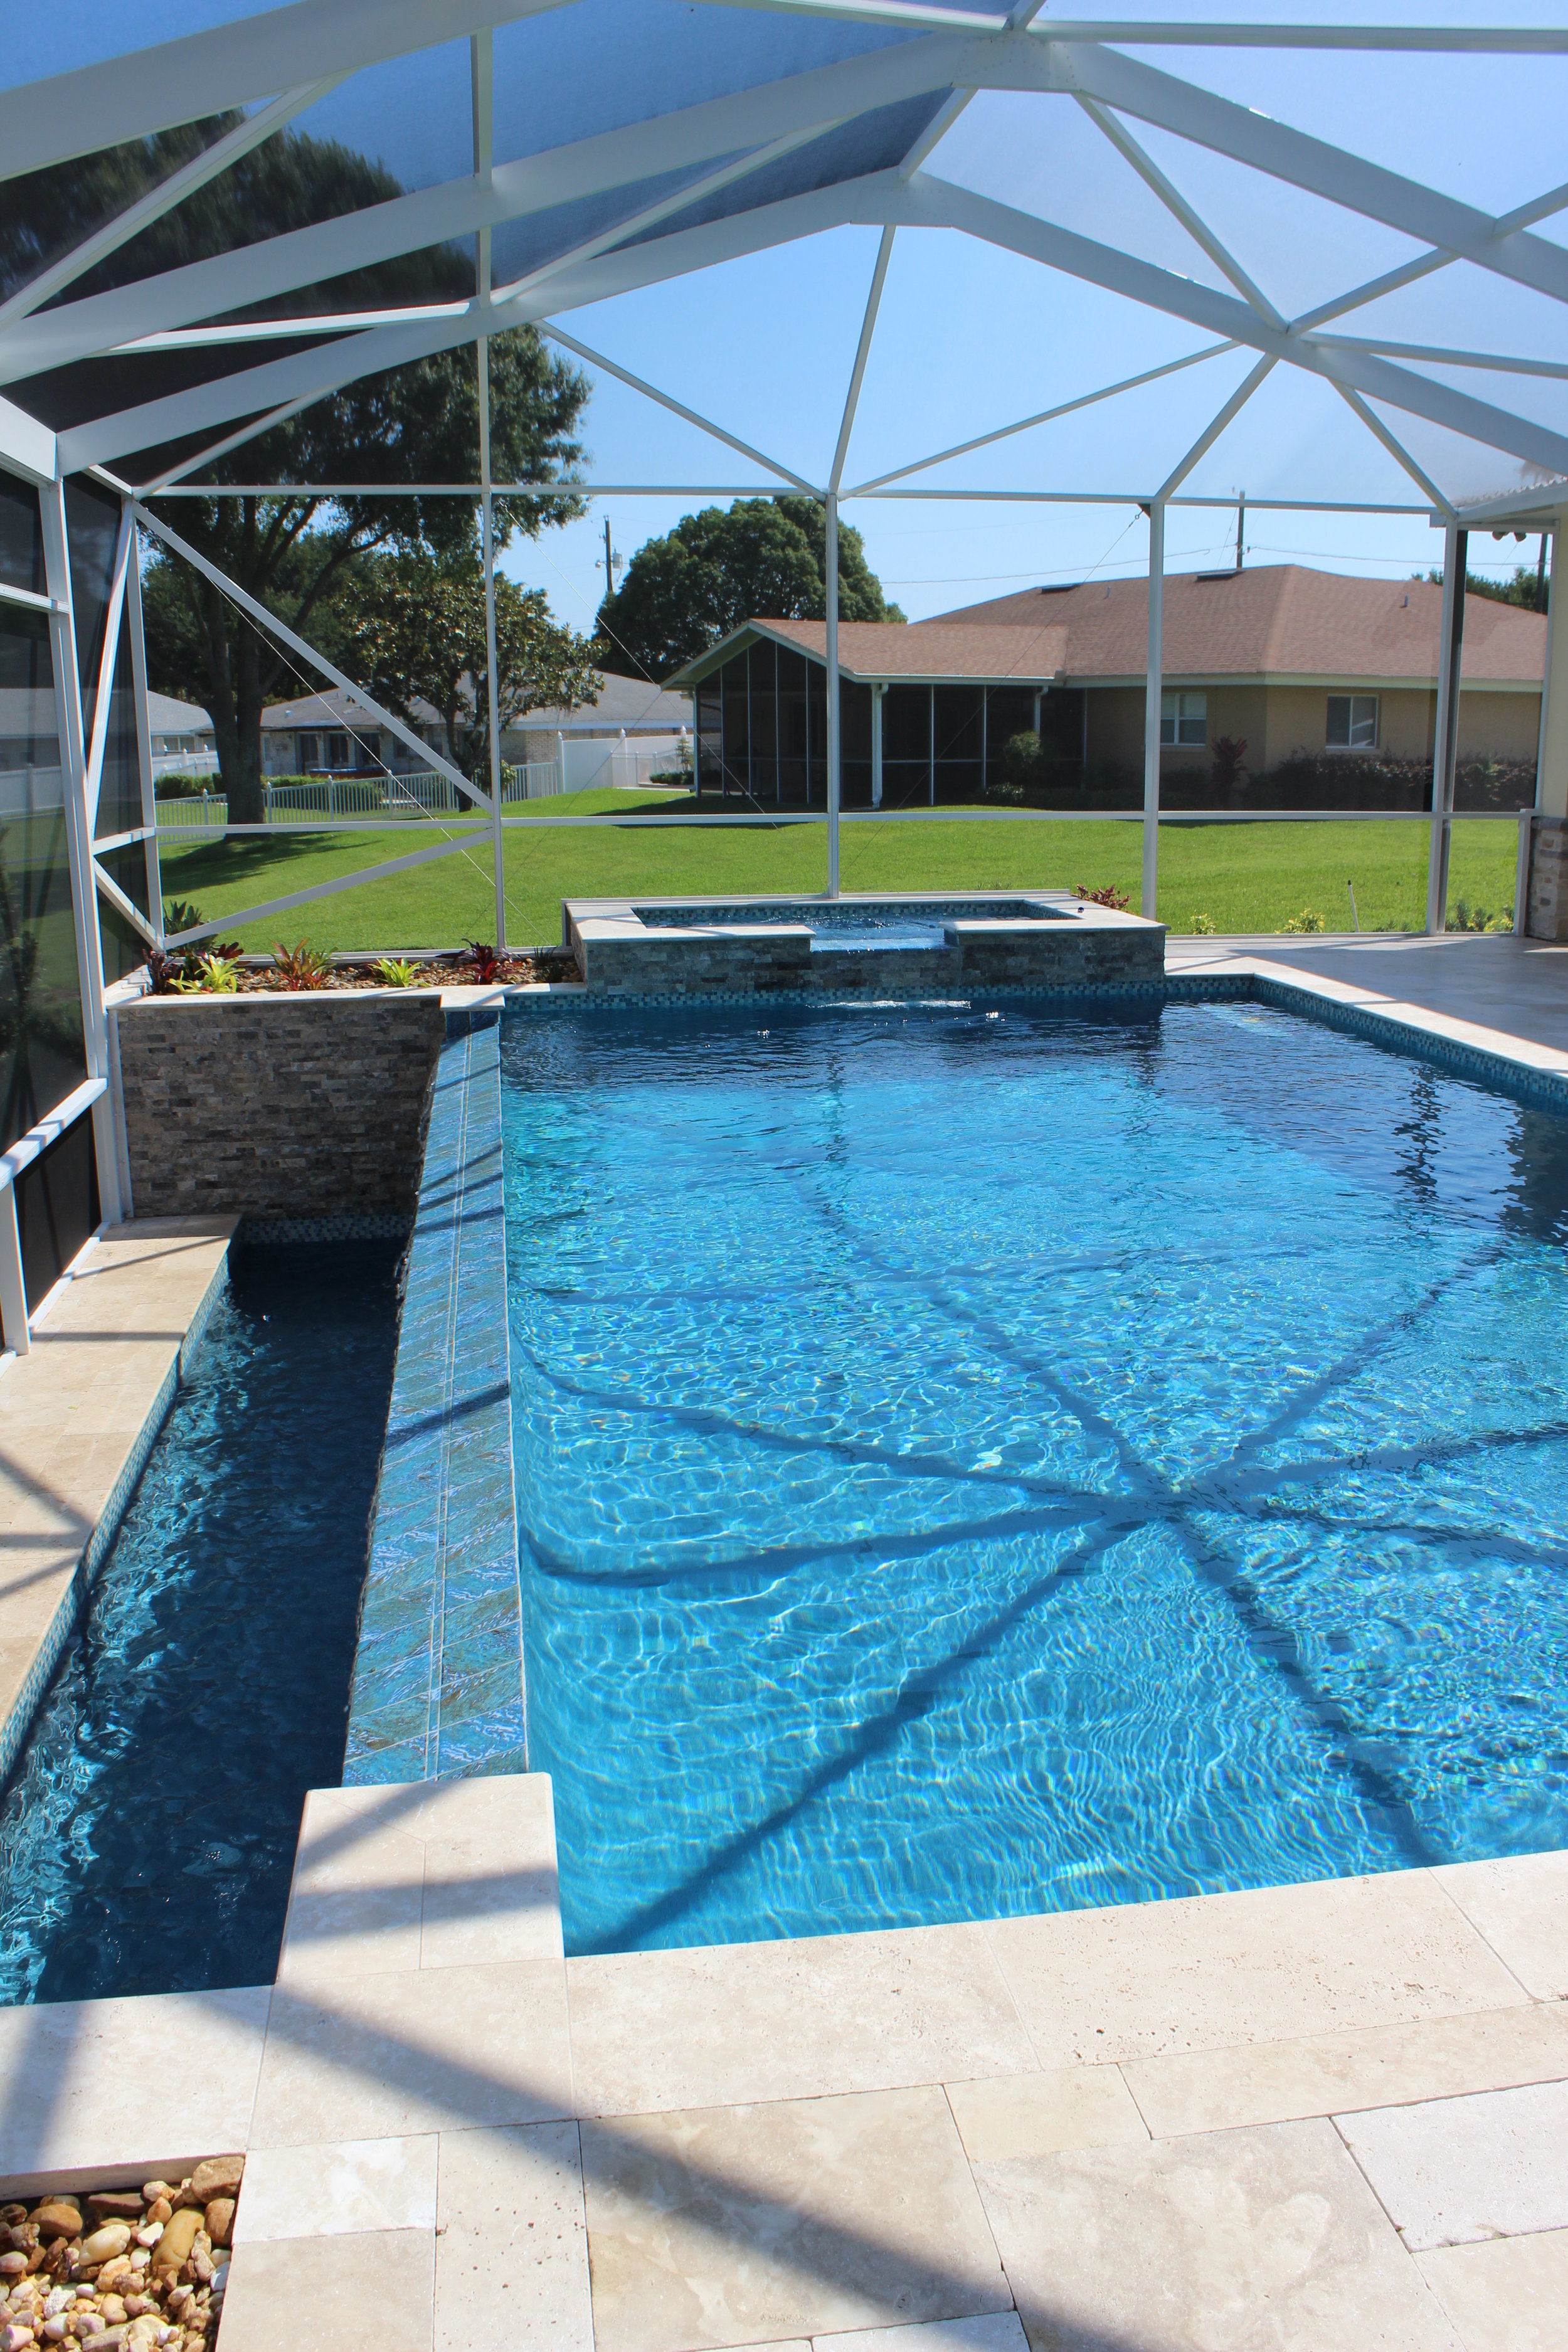 Reedy pool area 014.JPG